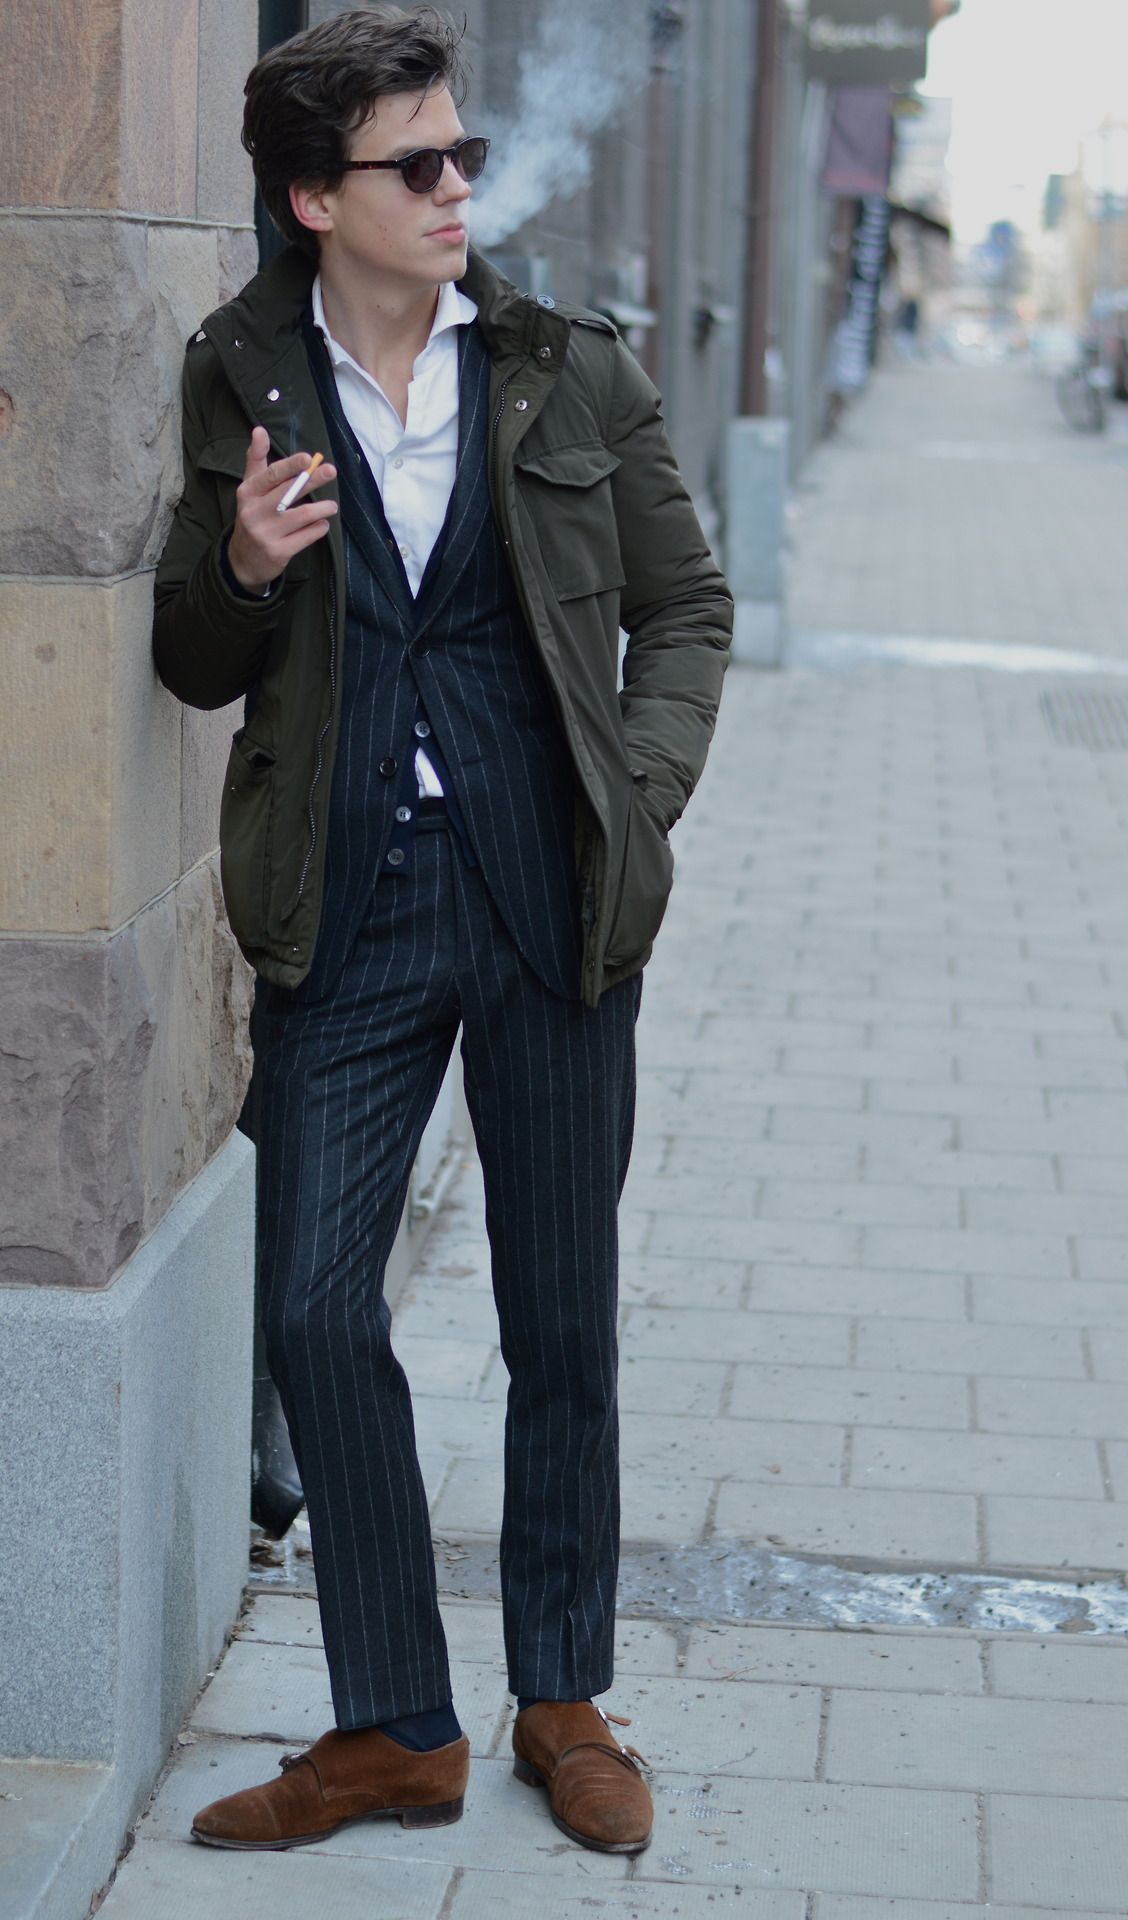 Suit with field jacket.